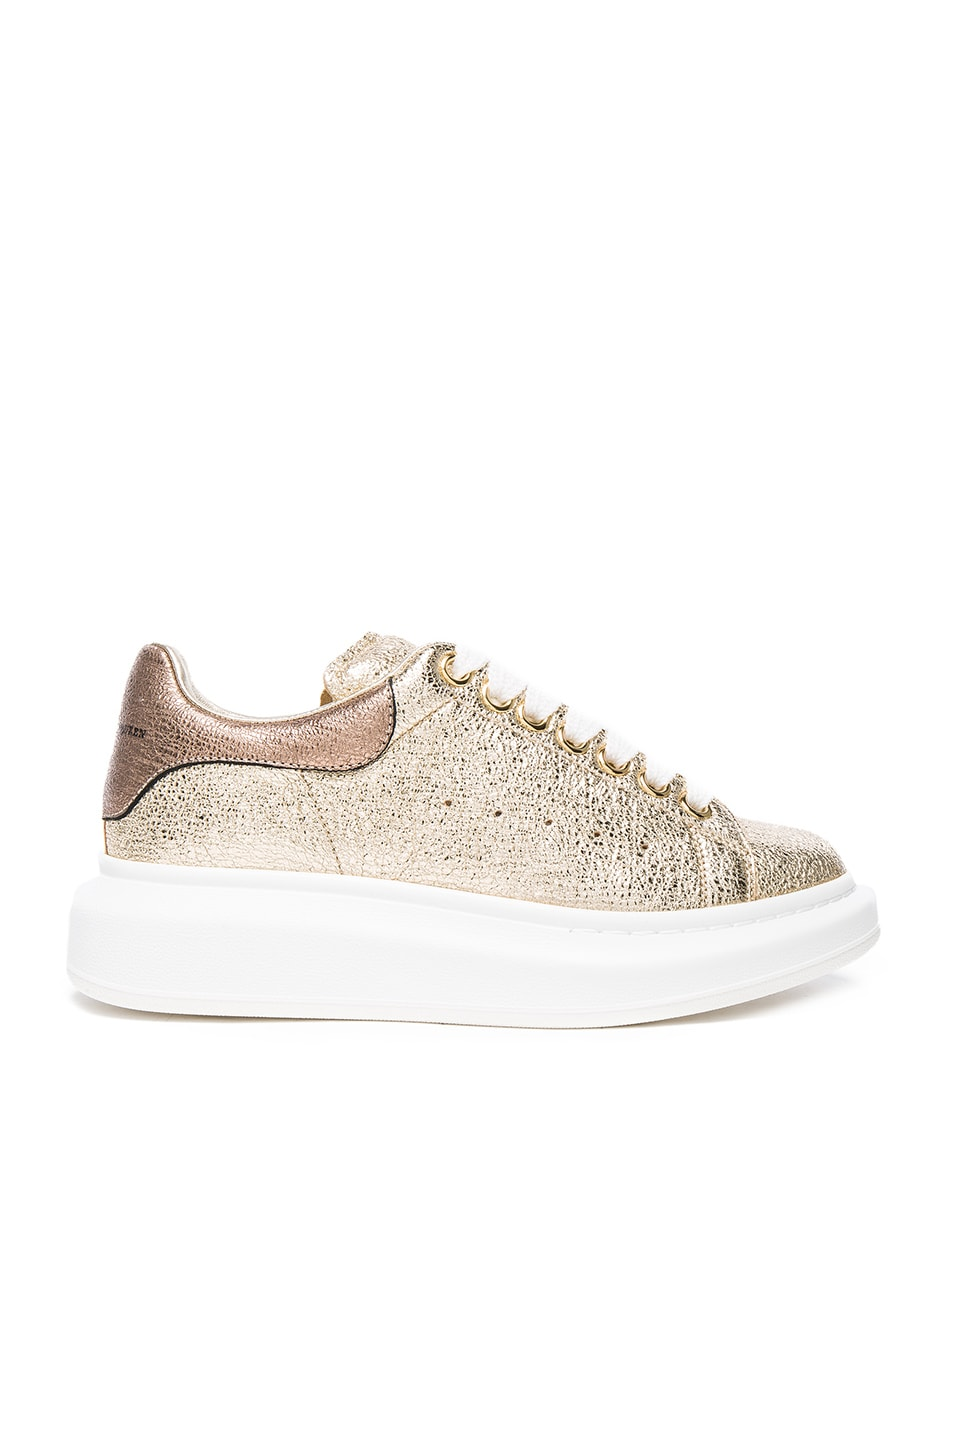 Image 1 of Alexander McQueen Leather Platform Sneakers in Gold & Boudoir